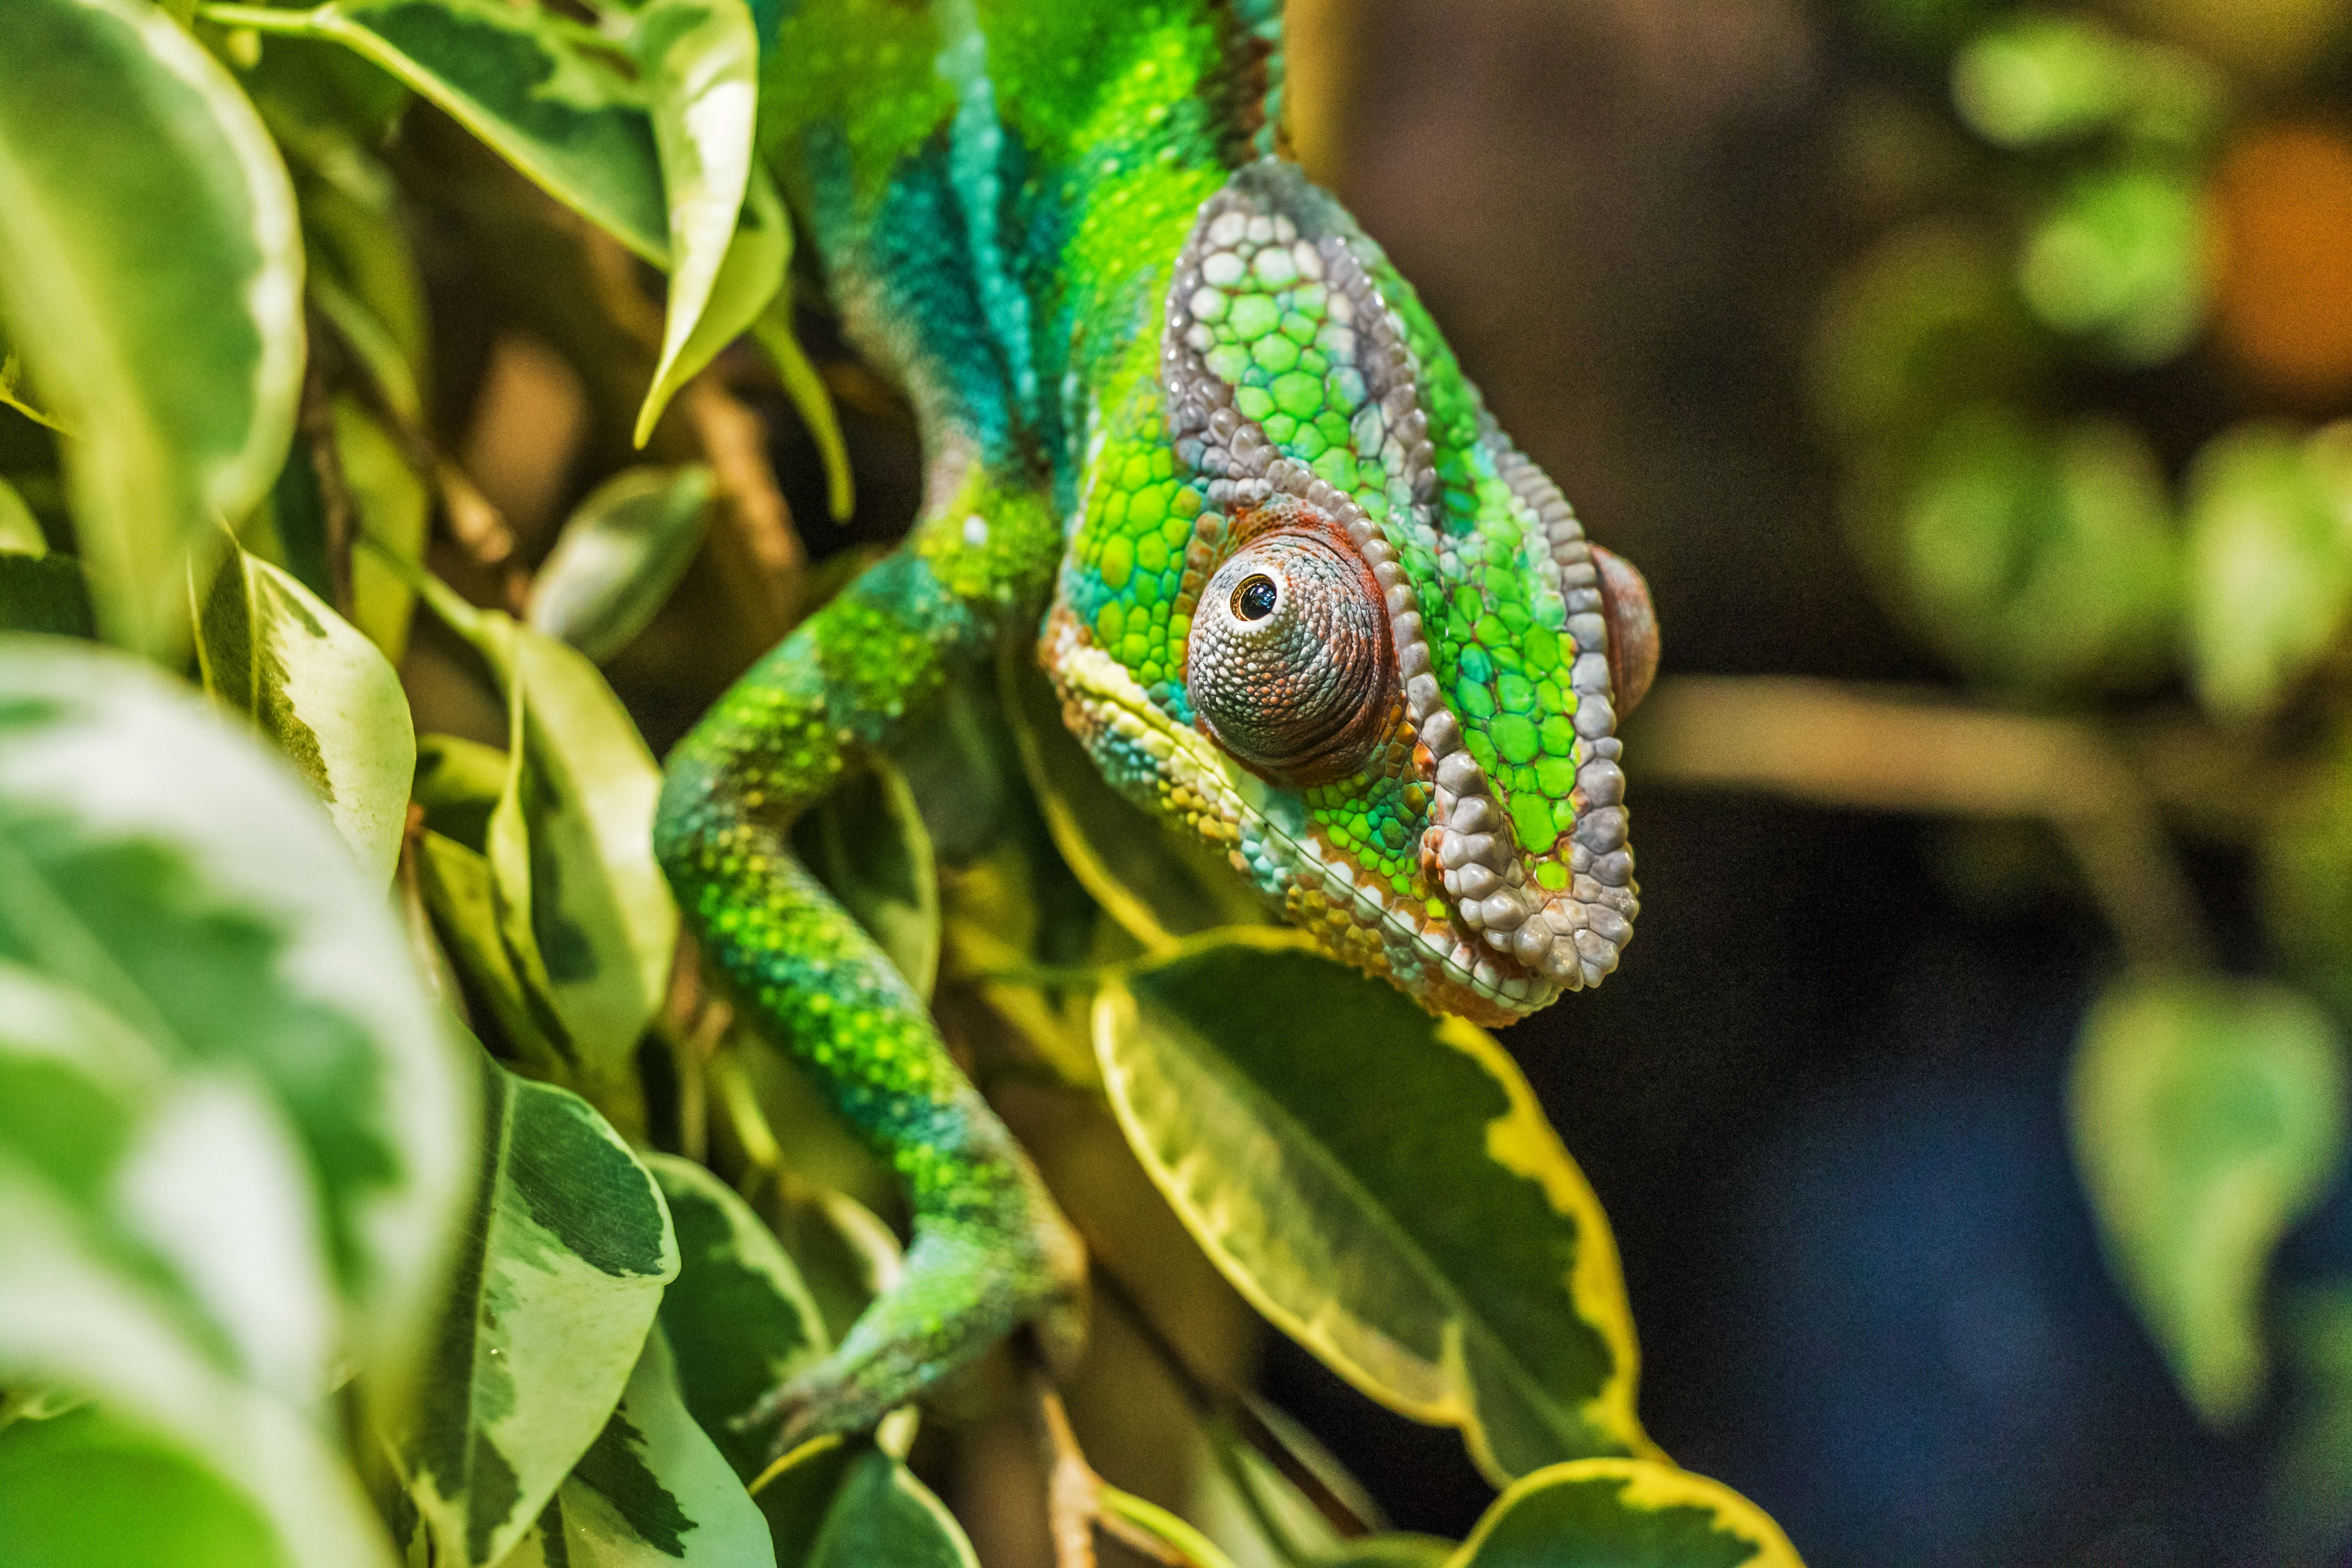 Green Reptile on Green Leaf